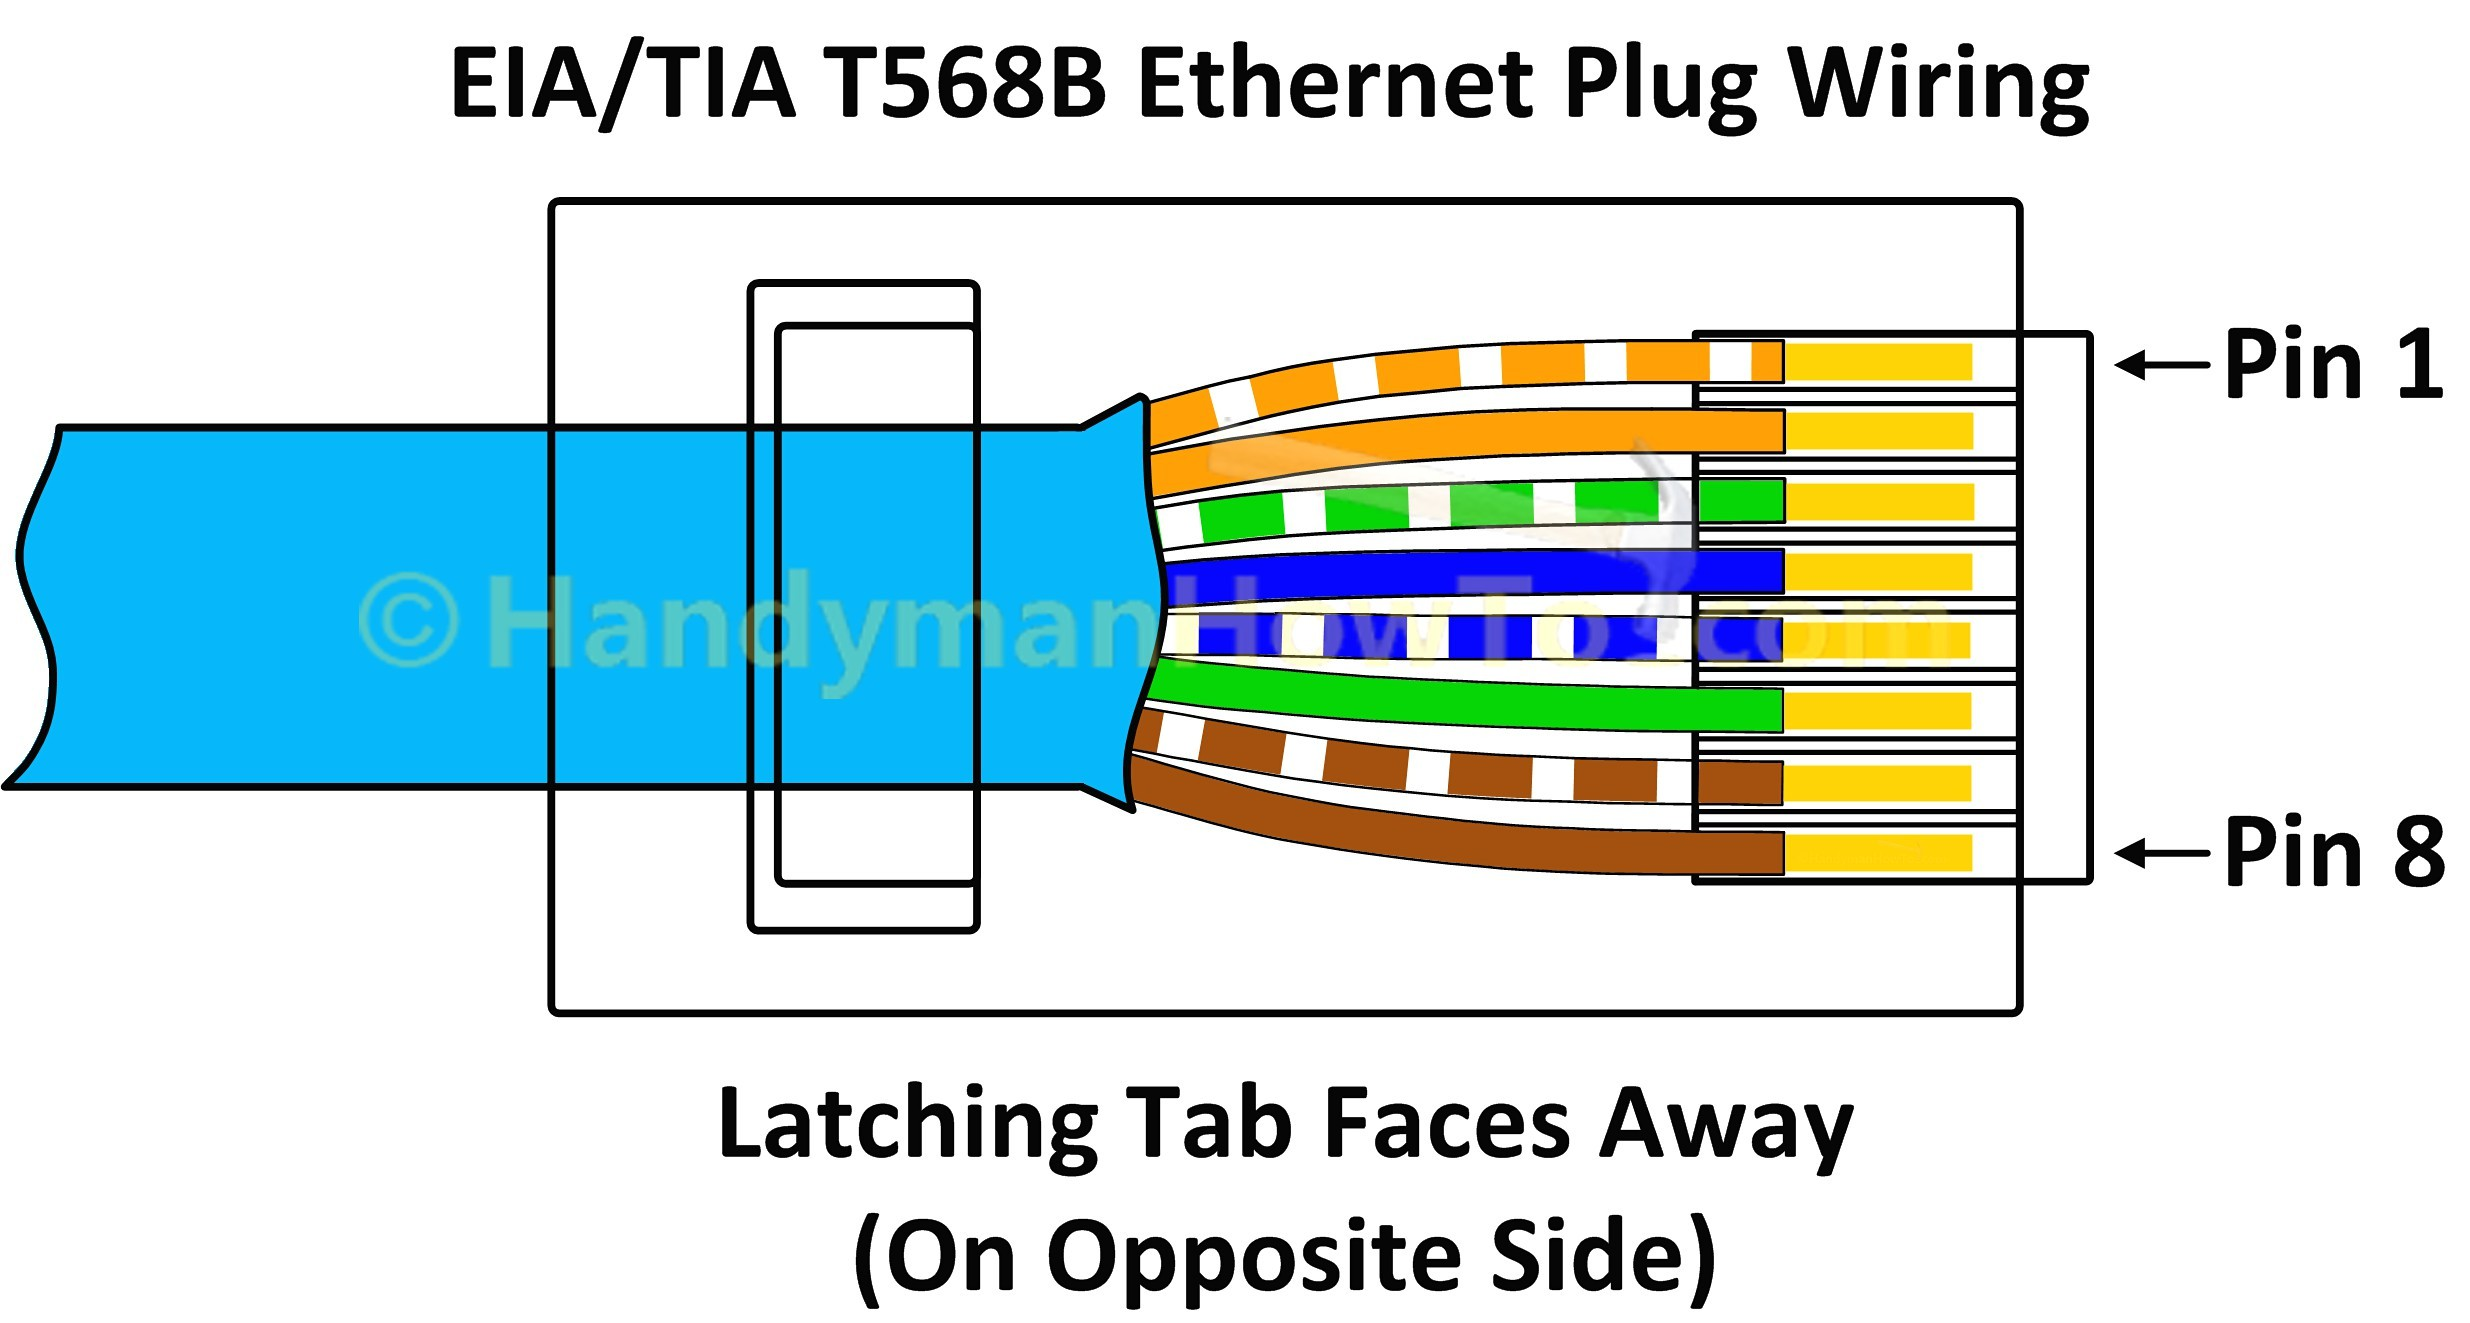 Cat5e Wire Diagram In T568A T568B RJ45 Cat6 Ethernet Cable Wiring Throughout